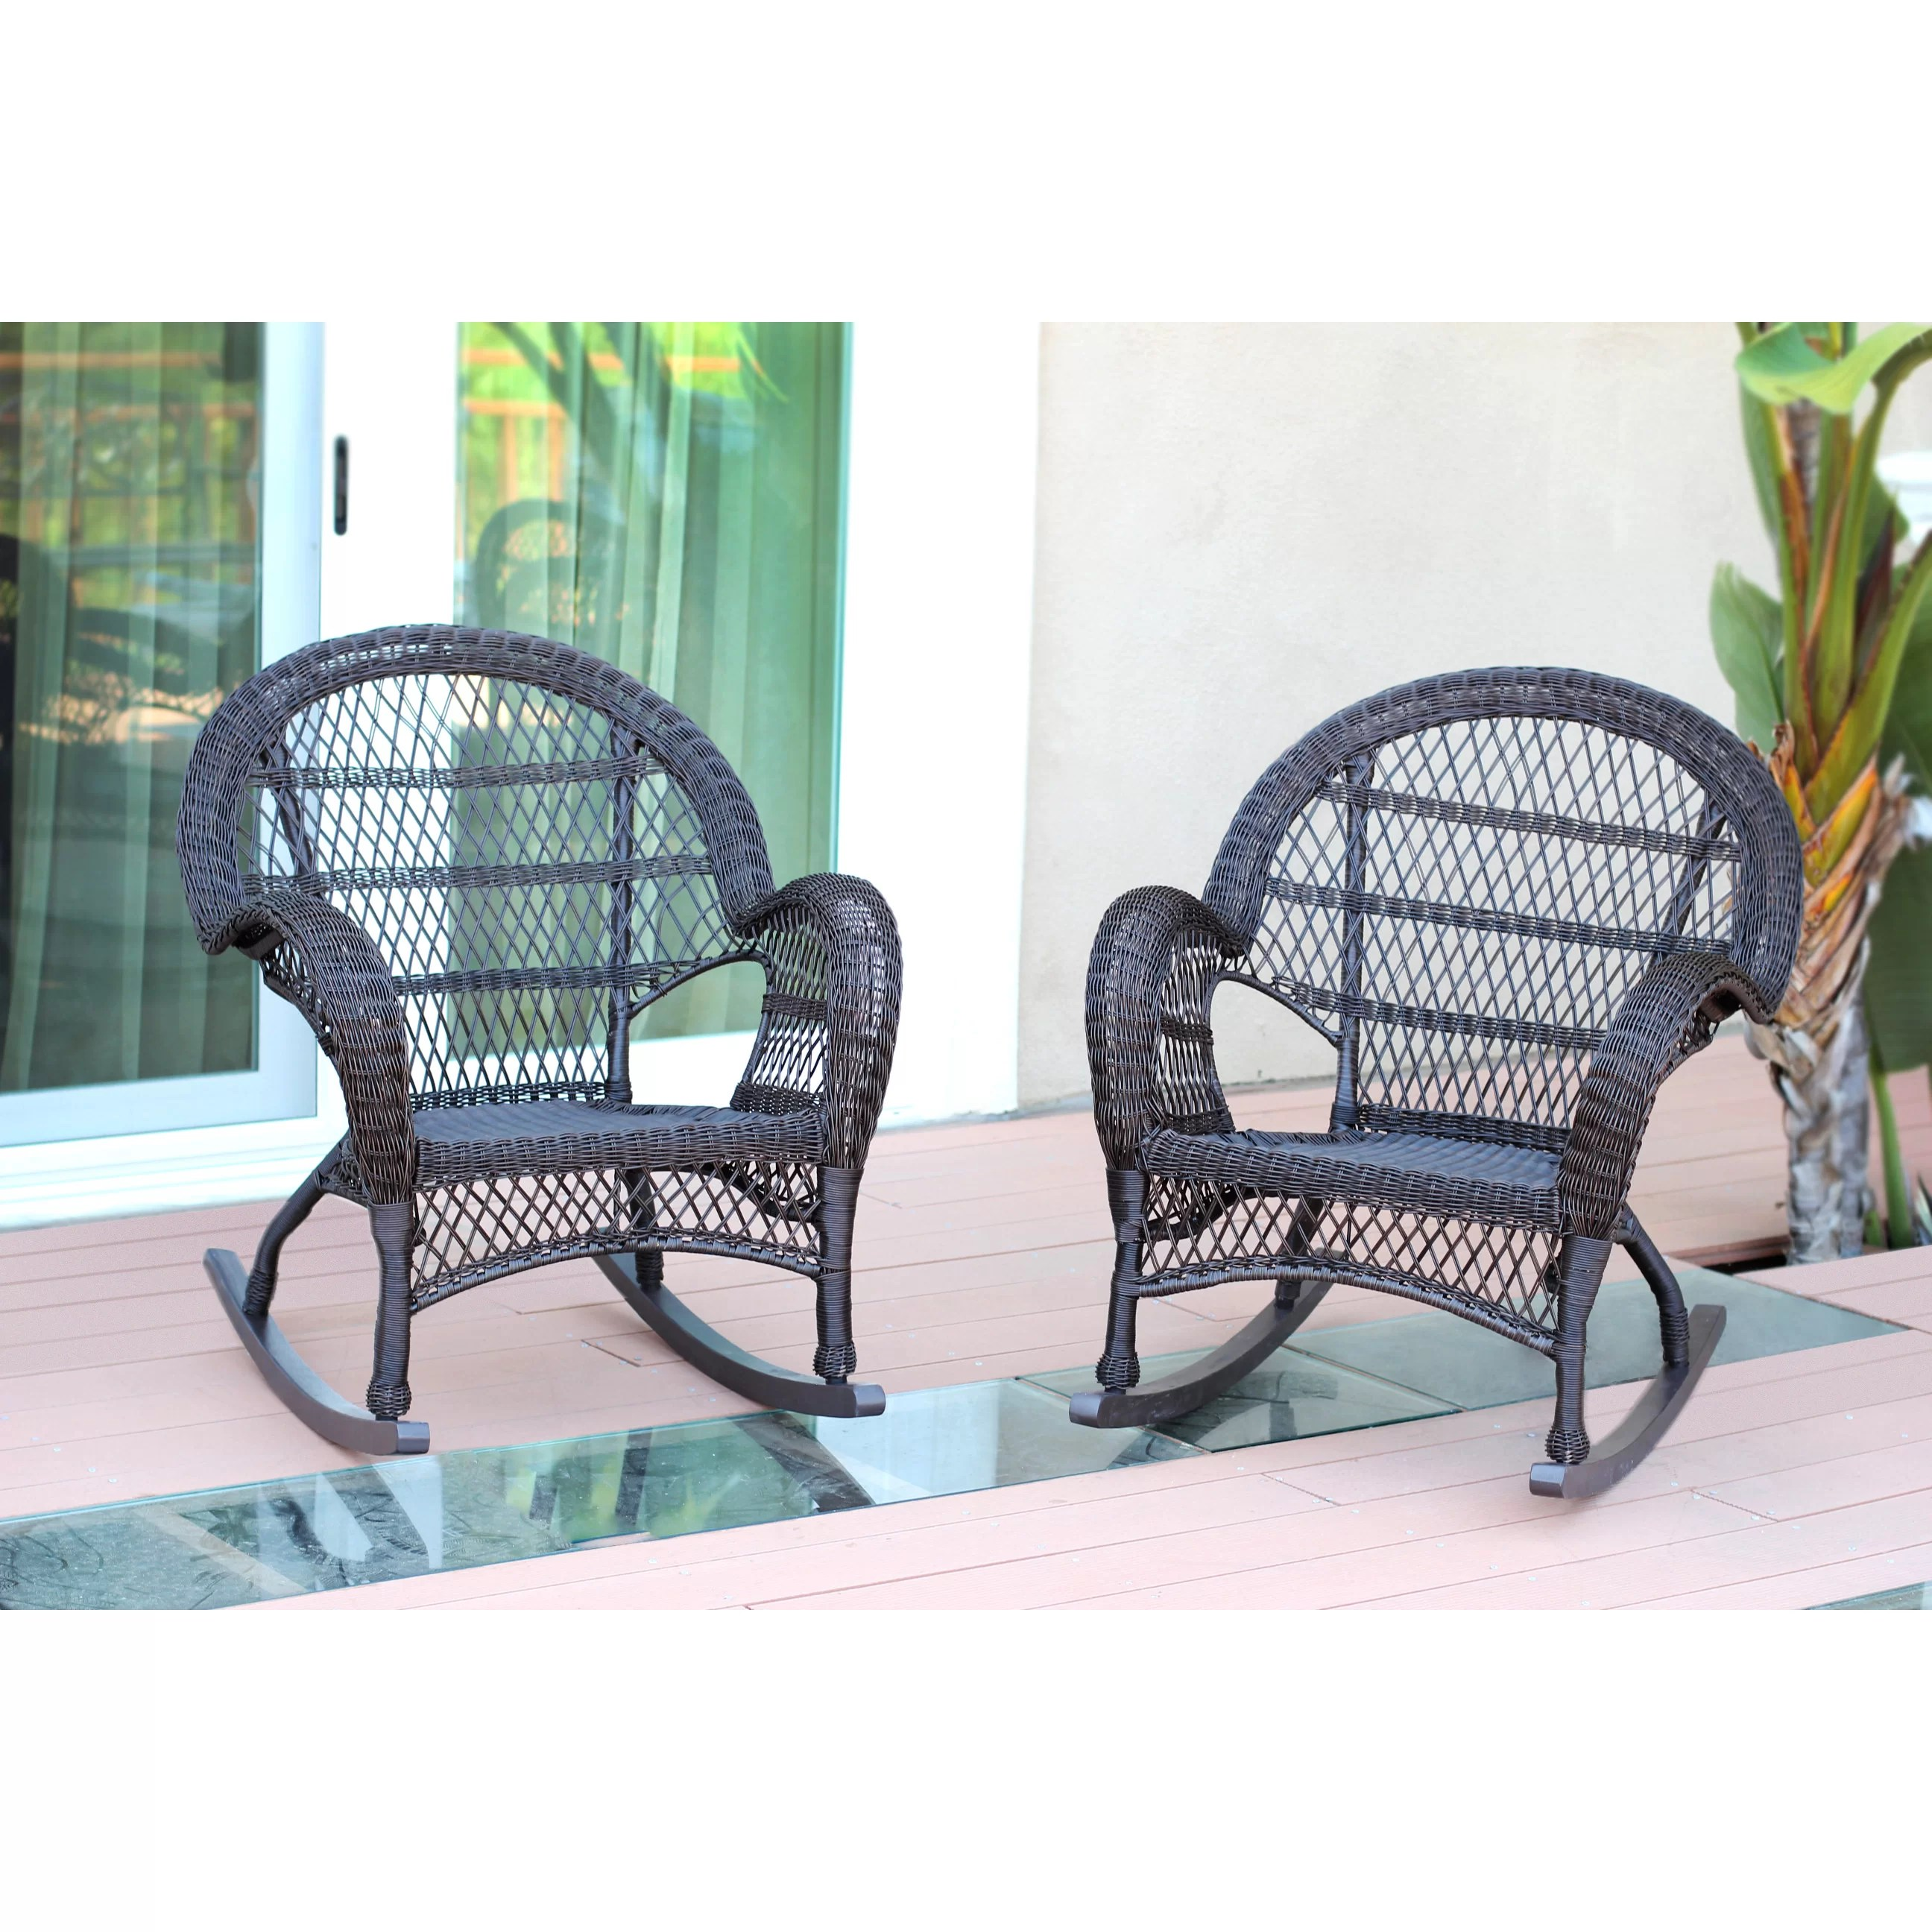 Wicker Rocker Chair Jeco Inc Wicker Rocker Chair And Reviews Wayfair